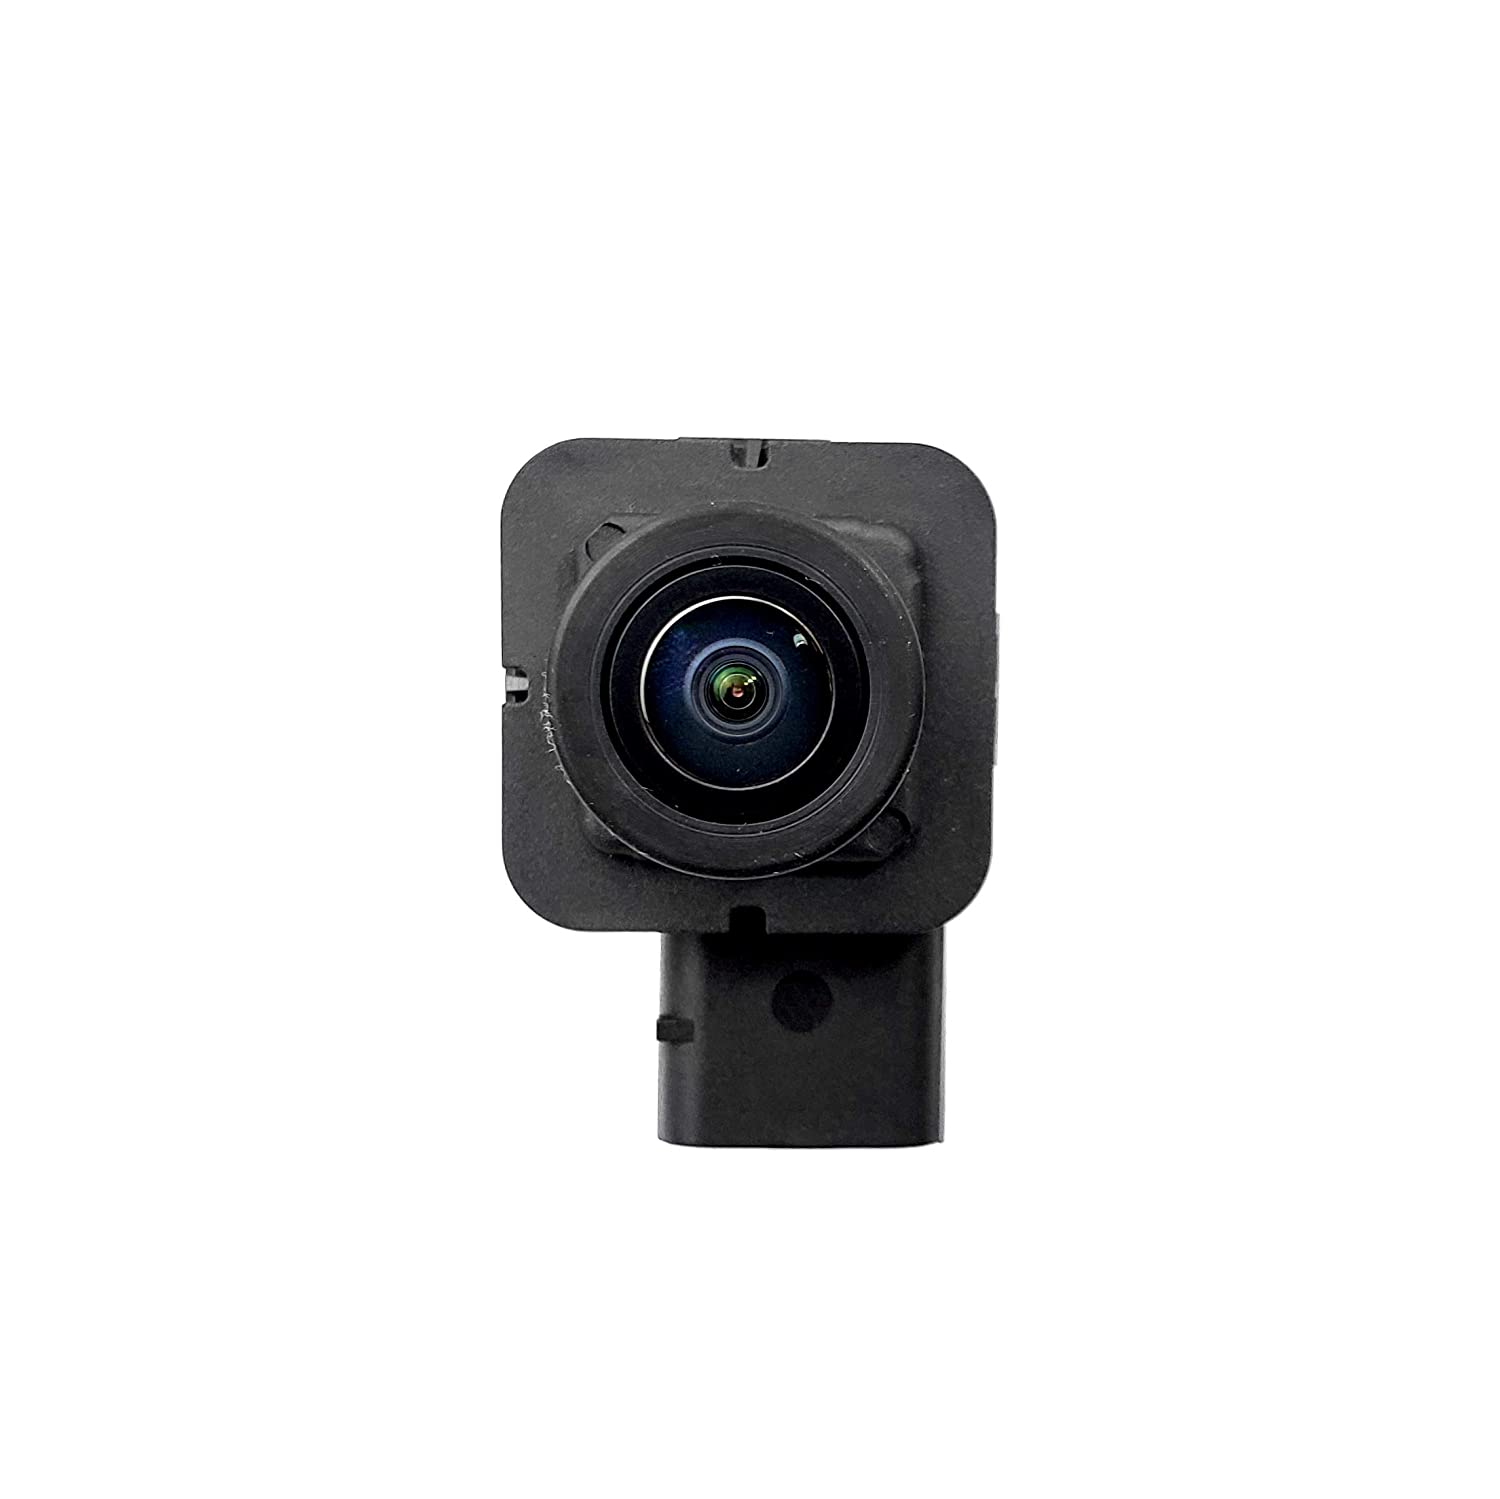 2013-2014 OE Part # ET4Z-19G490-A Master Tailgaters Replacement for Ford Edge Backup Camera